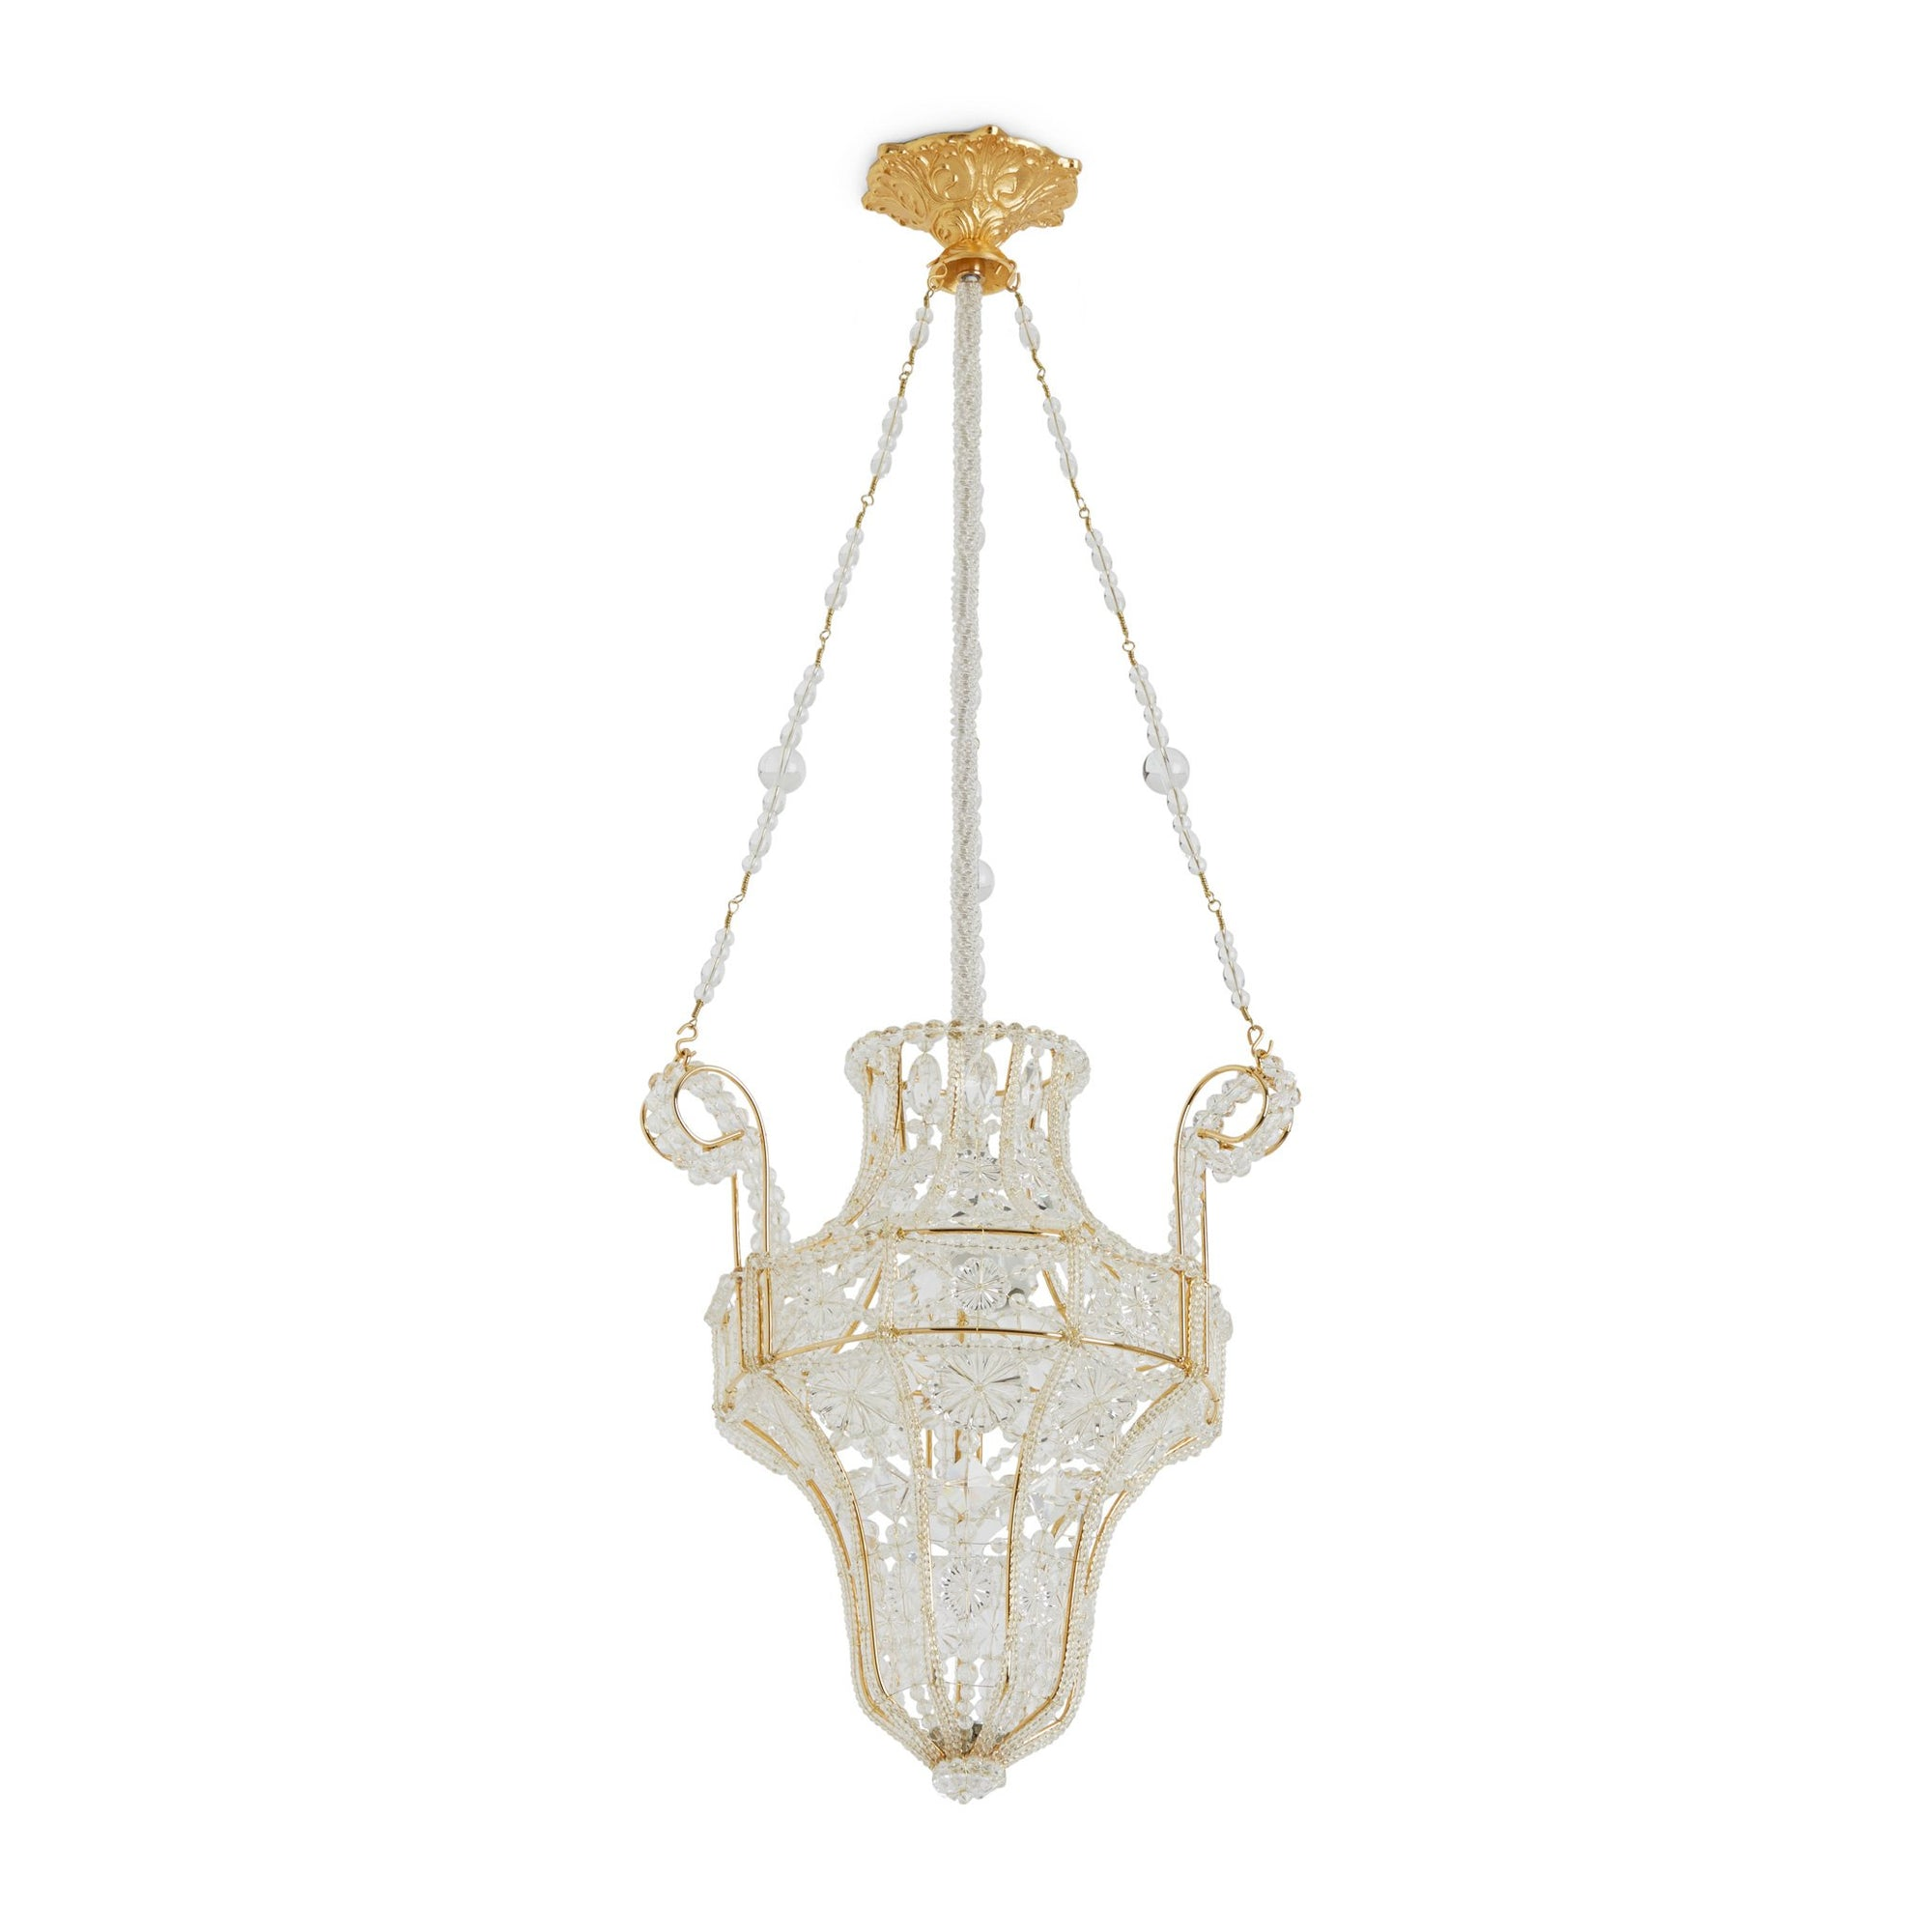 7138-GP Sherle Wagner International Crystal Pendant Chandelier with Renaissance Canopy in Gold plate metal finish